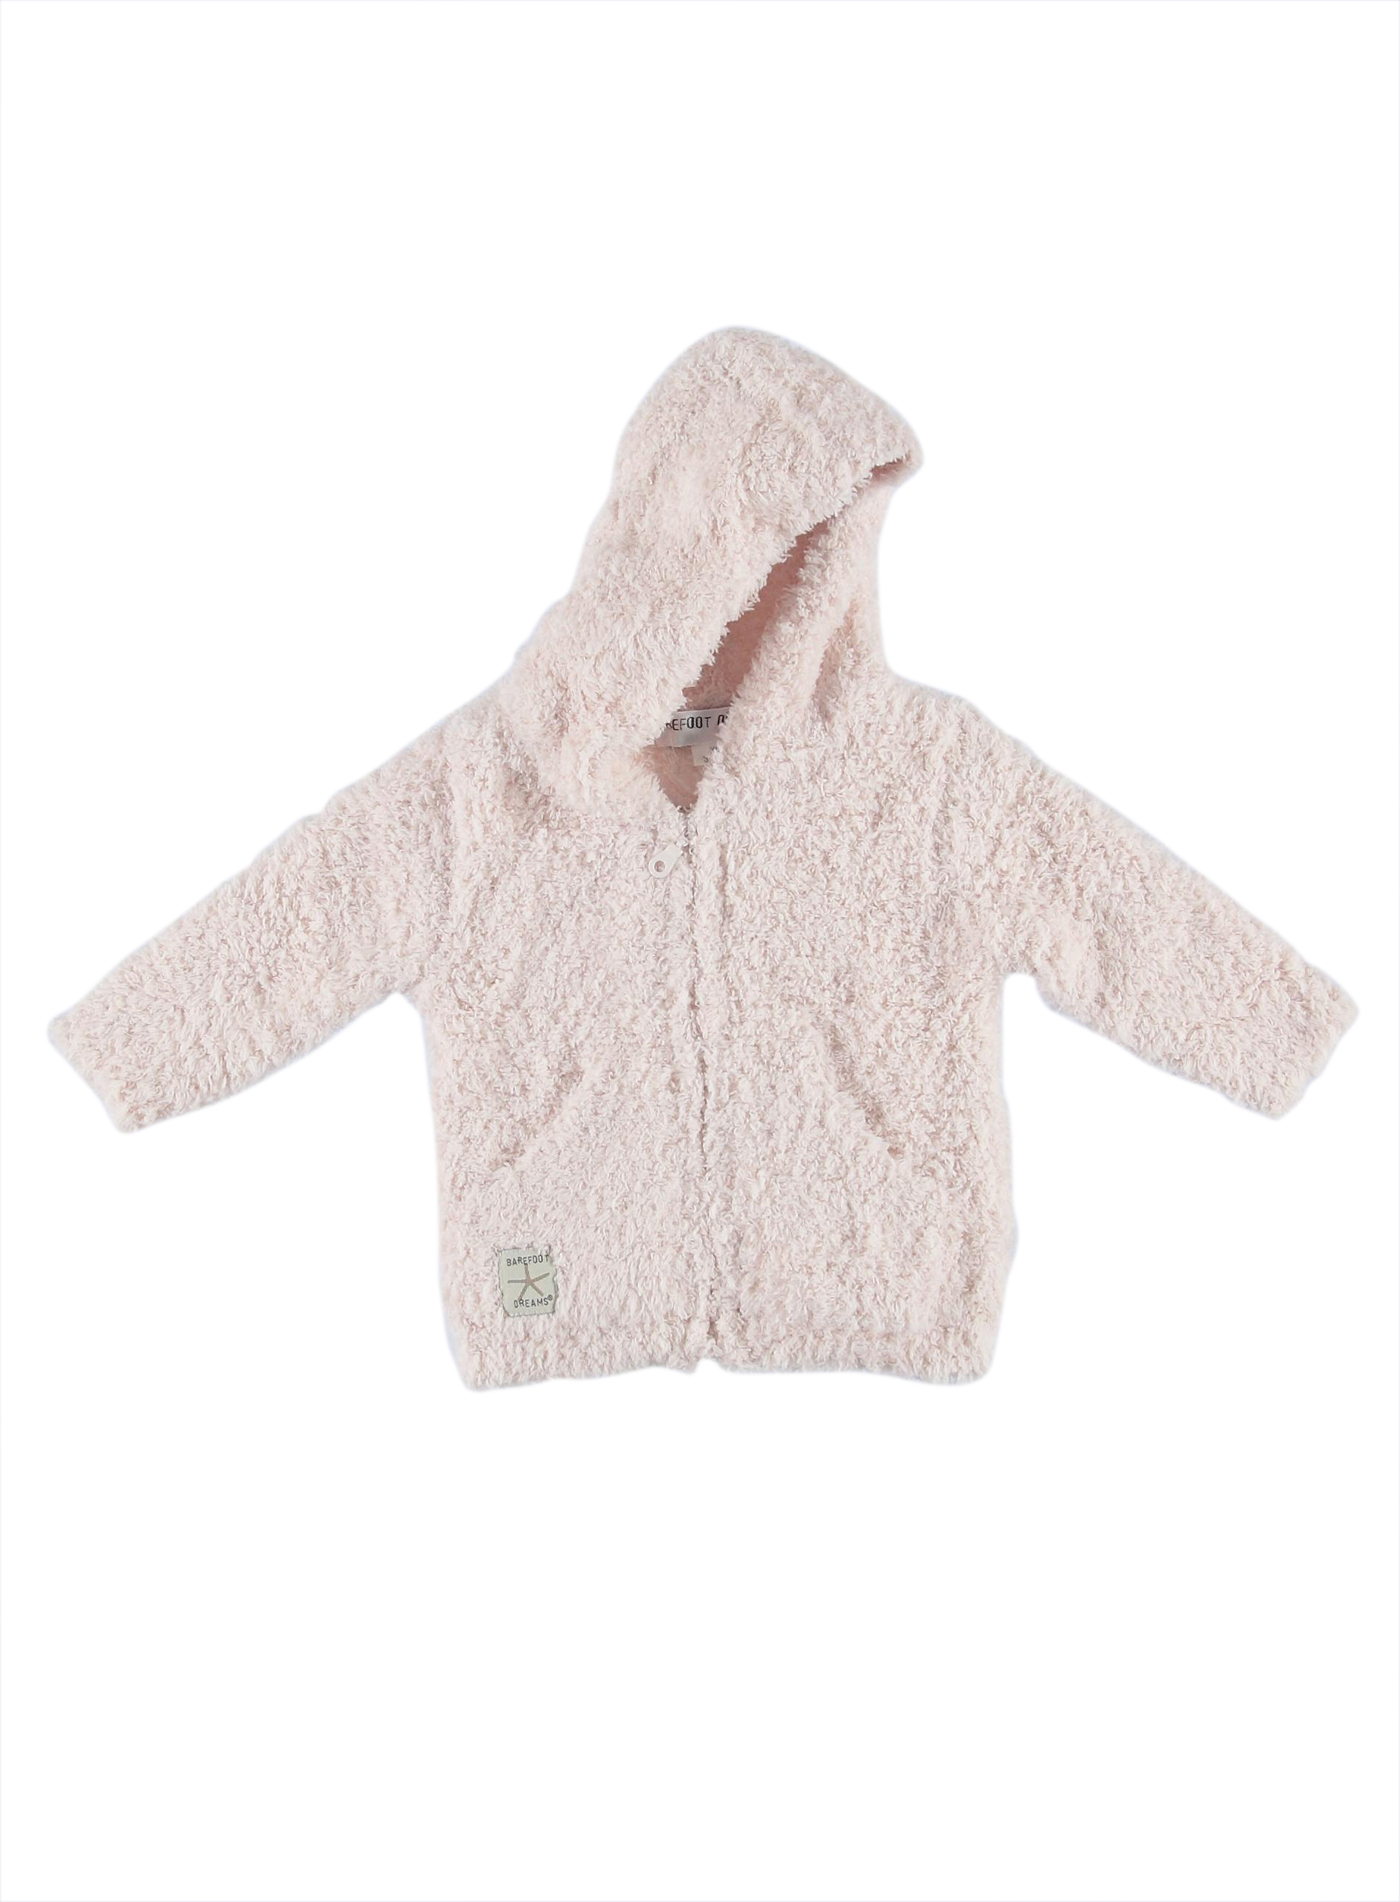 Barefoot Dreams CozyChic Infant Hoodie